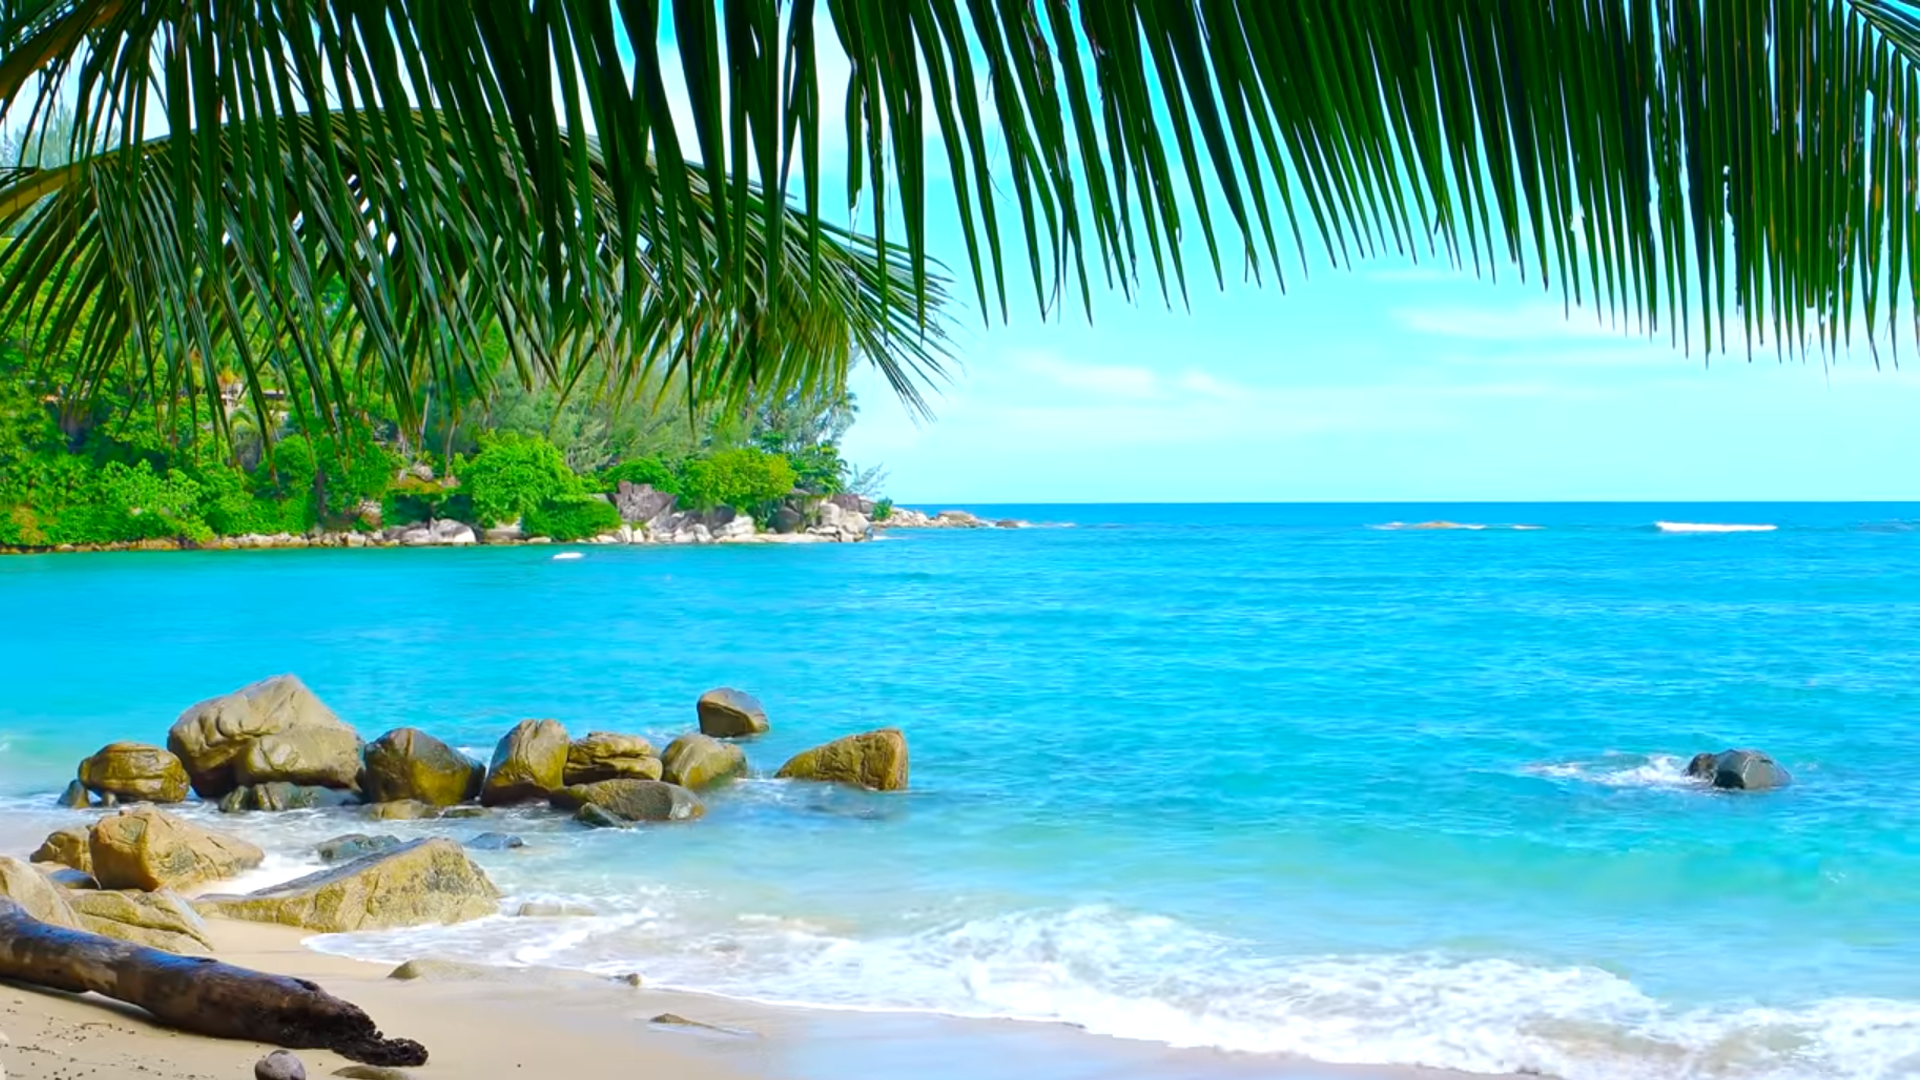 10 Best Tropical Beaches You Must Visit in Your Lifetime